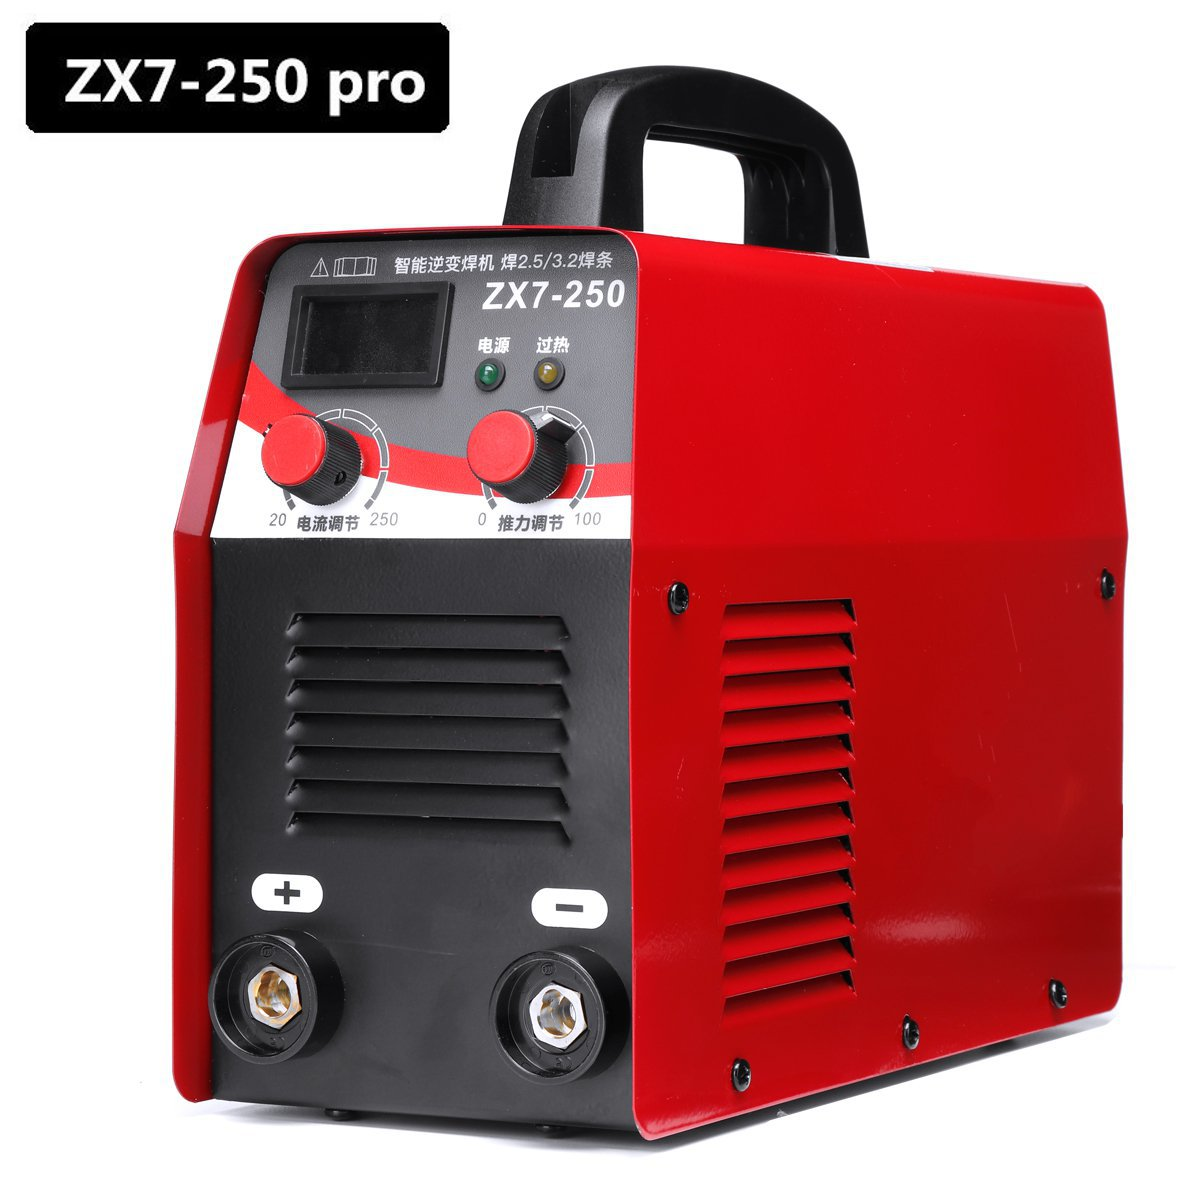 New Arrival 220V 9500W ZX7-250 LCD Display Electric Welding Machine 10-250A Arc/MMA Inverter IGBT Welders Welding WorkingNew Arrival 220V 9500W ZX7-250 LCD Display Electric Welding Machine 10-250A Arc/MMA Inverter IGBT Welders Welding Working